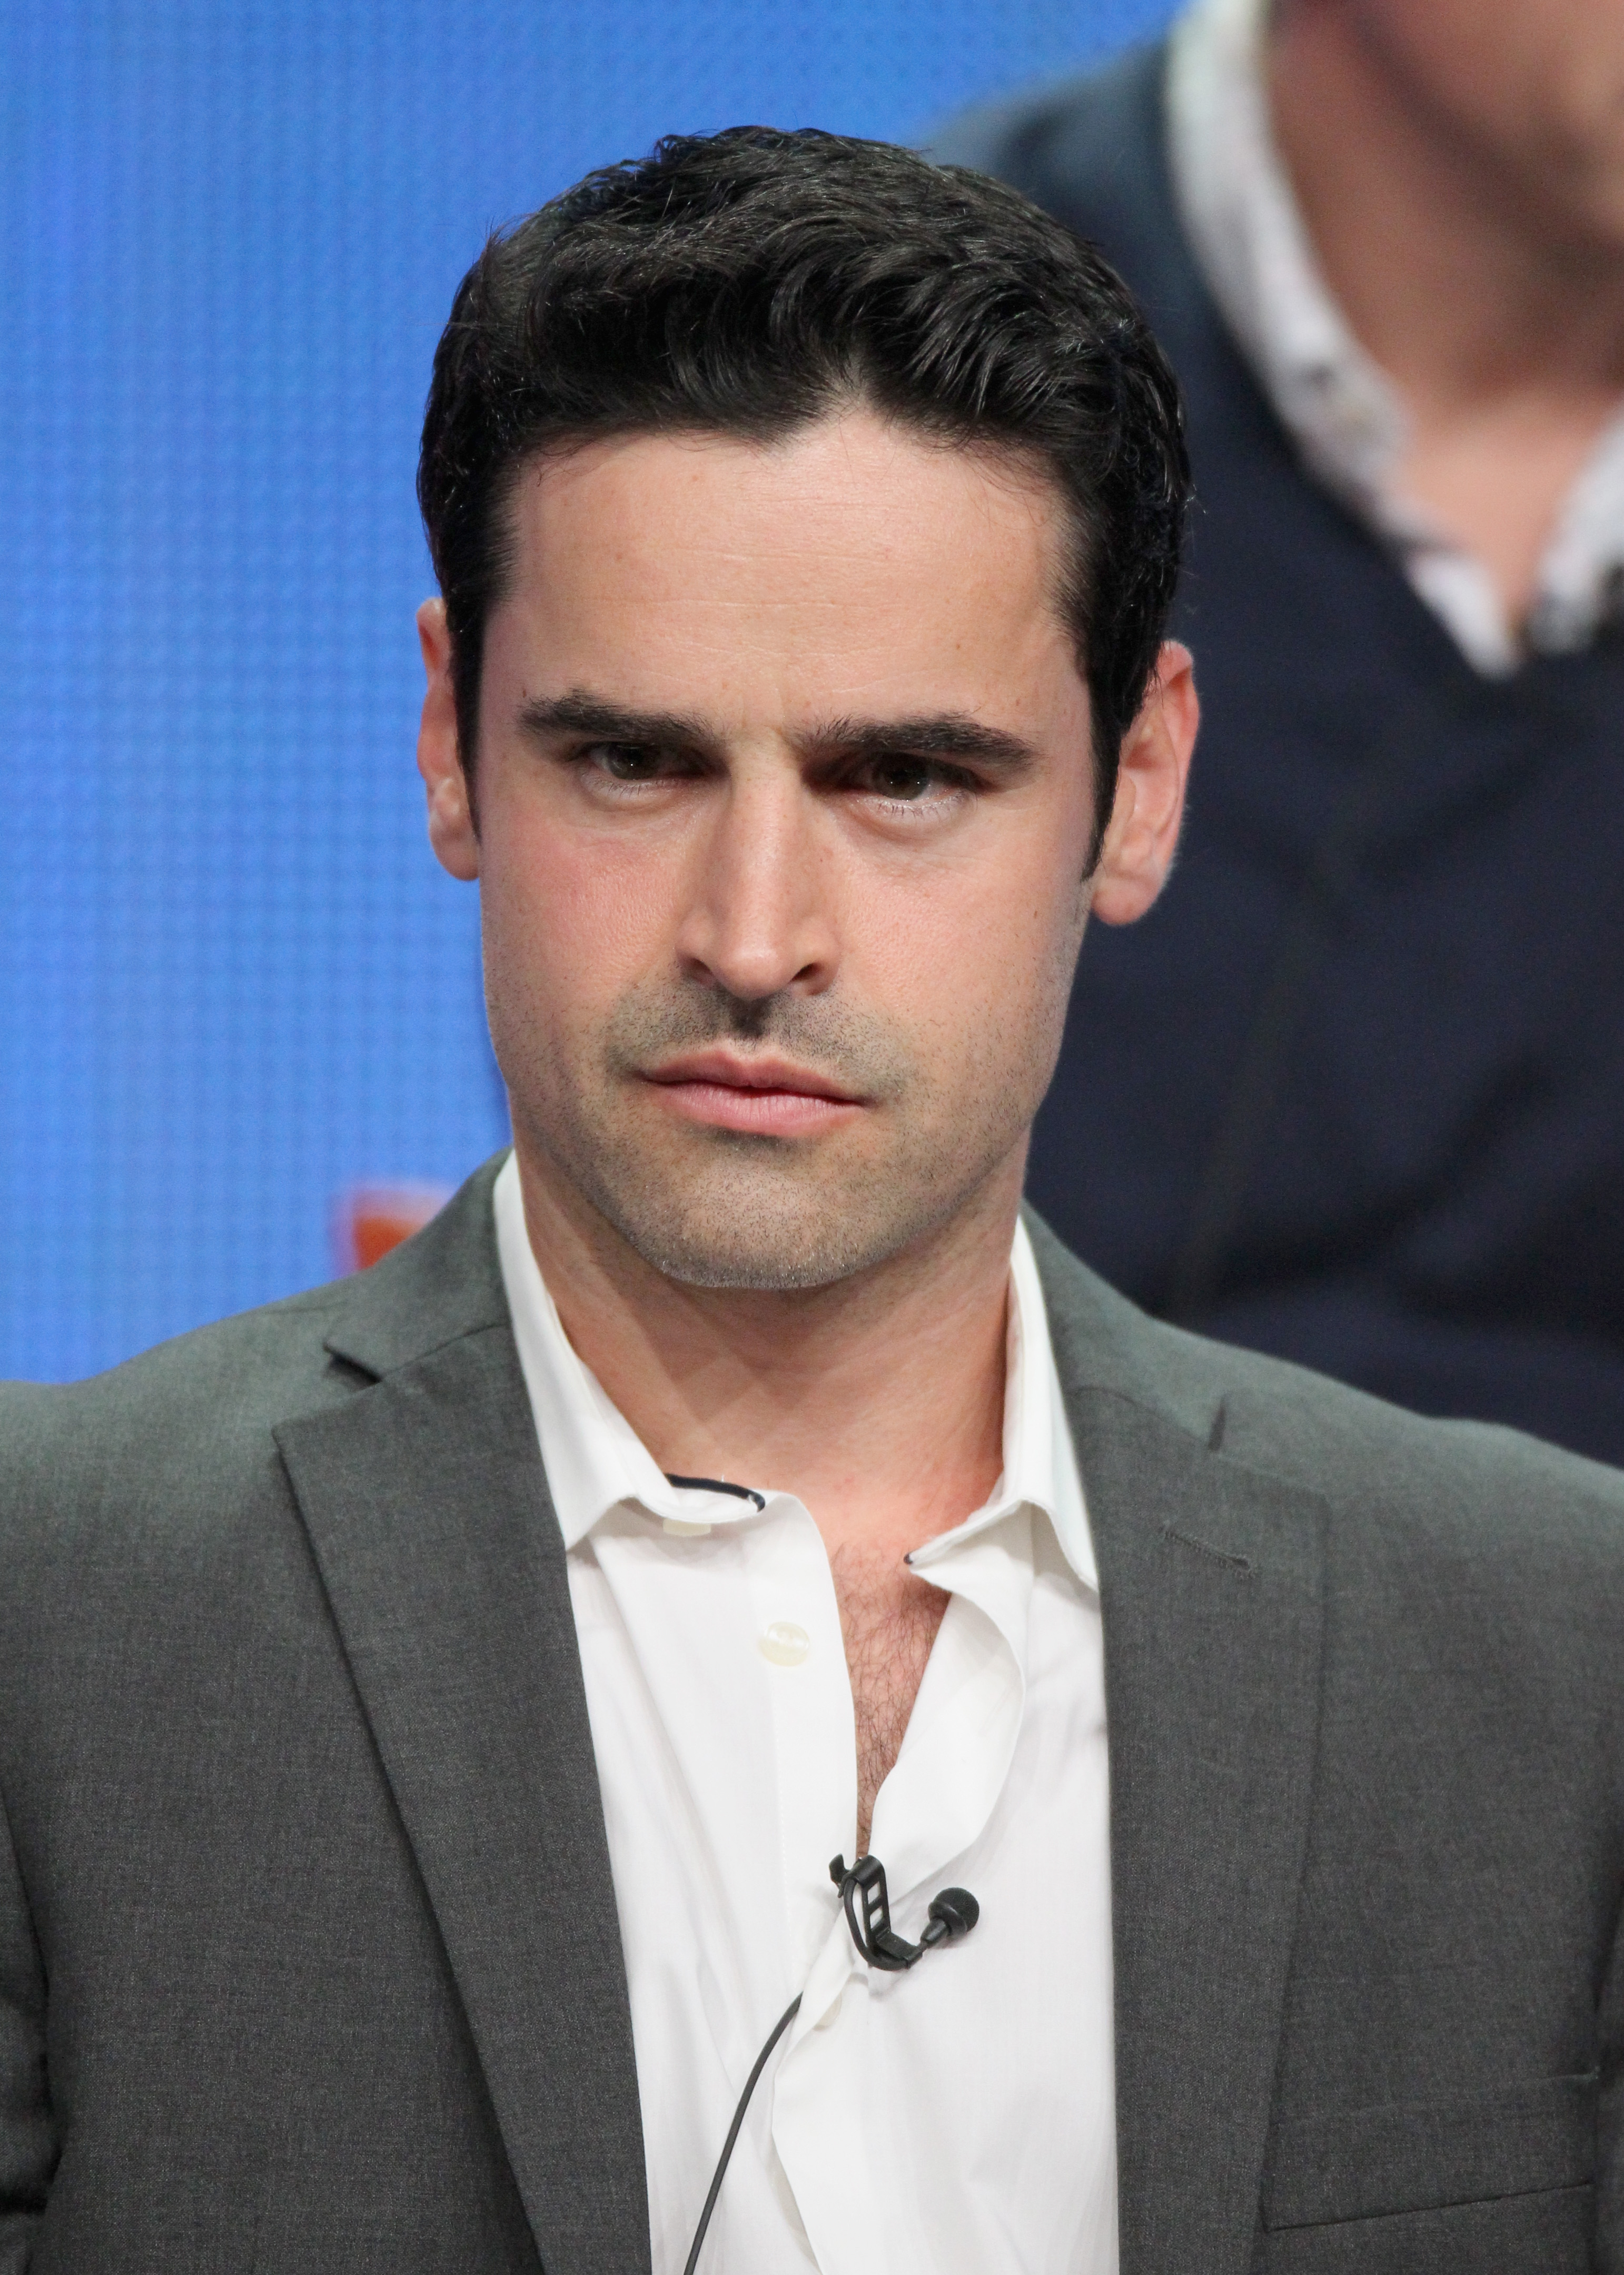 Jesse Bradford plays a single dad dealing with his ex's dating life in Guys With Kids.